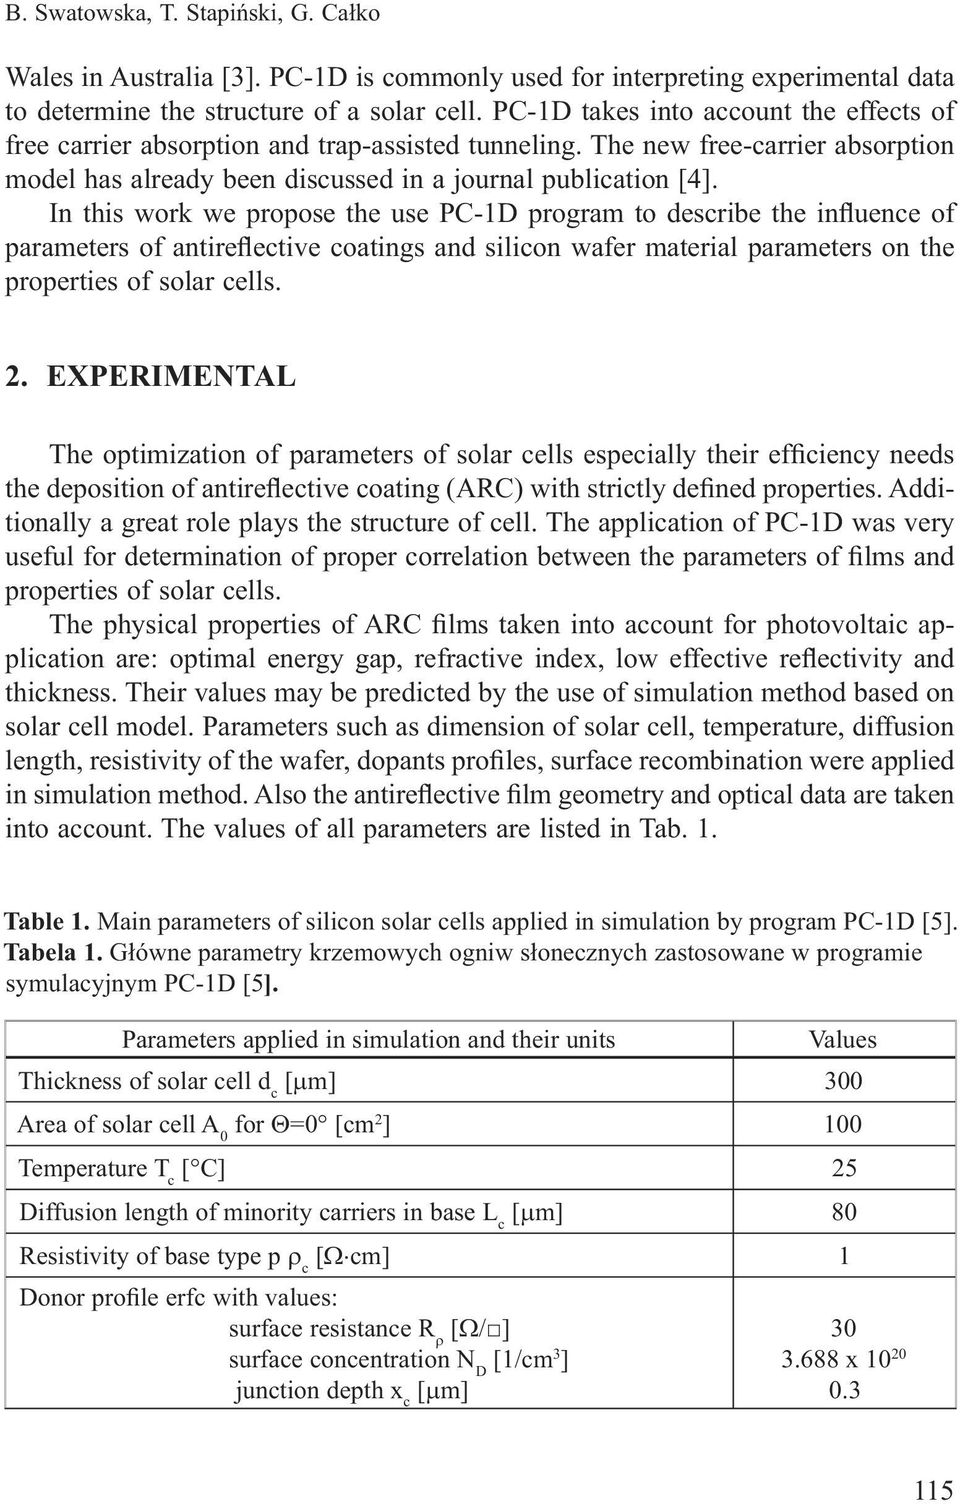 In this work we propose the use PC-1D program to describe the influence of parameters of antireflective coatings and silicon wafer material parameters on the properties of solar cells. 2.